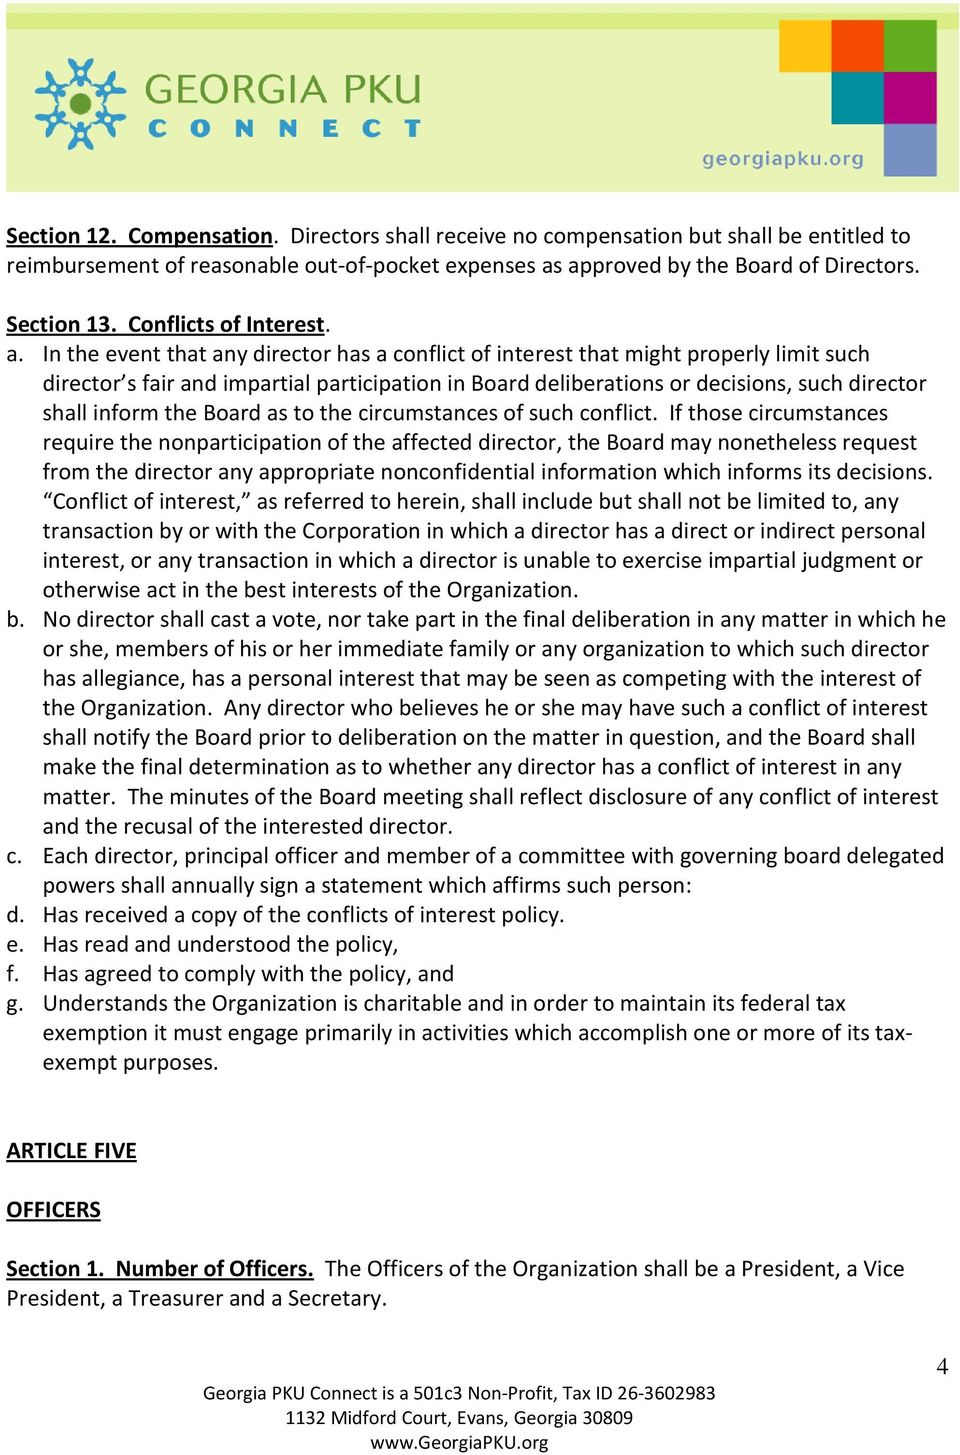 In the event that any director has a conflict of interest that might properly limit such director s fair and impartial participation in Board deliberations or decisions, such director shall inform